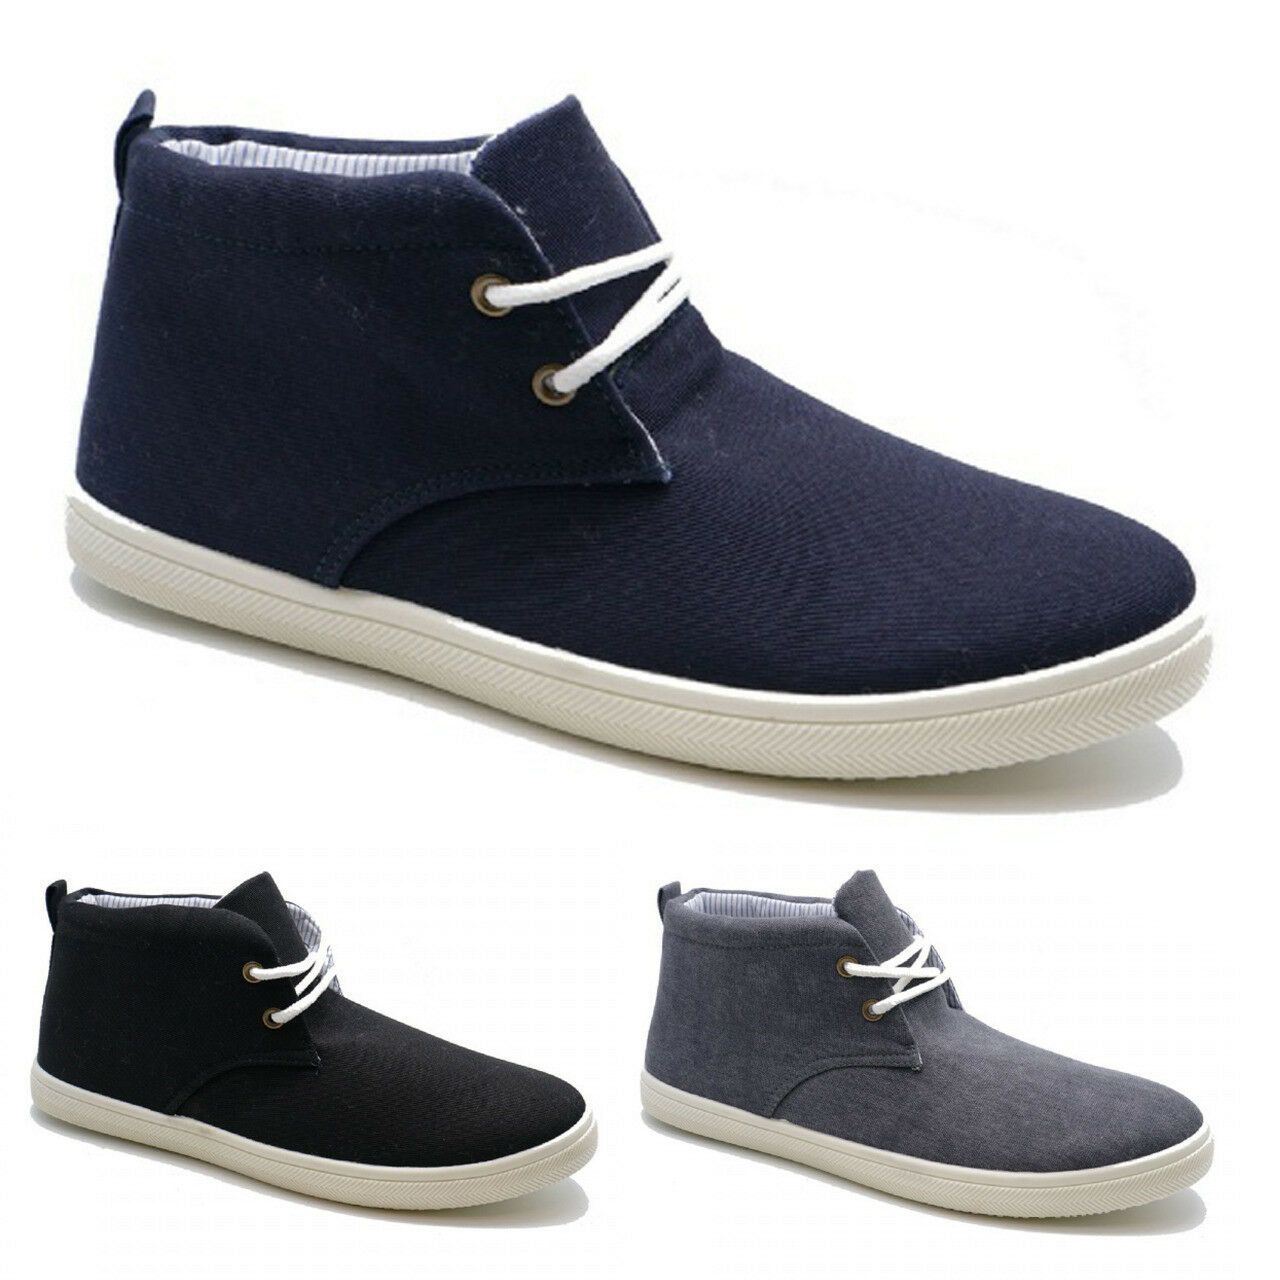 Mens Casual shoes Canvas , Skates .Trainers  plimsoll shoes Casual size  6-11 891c07